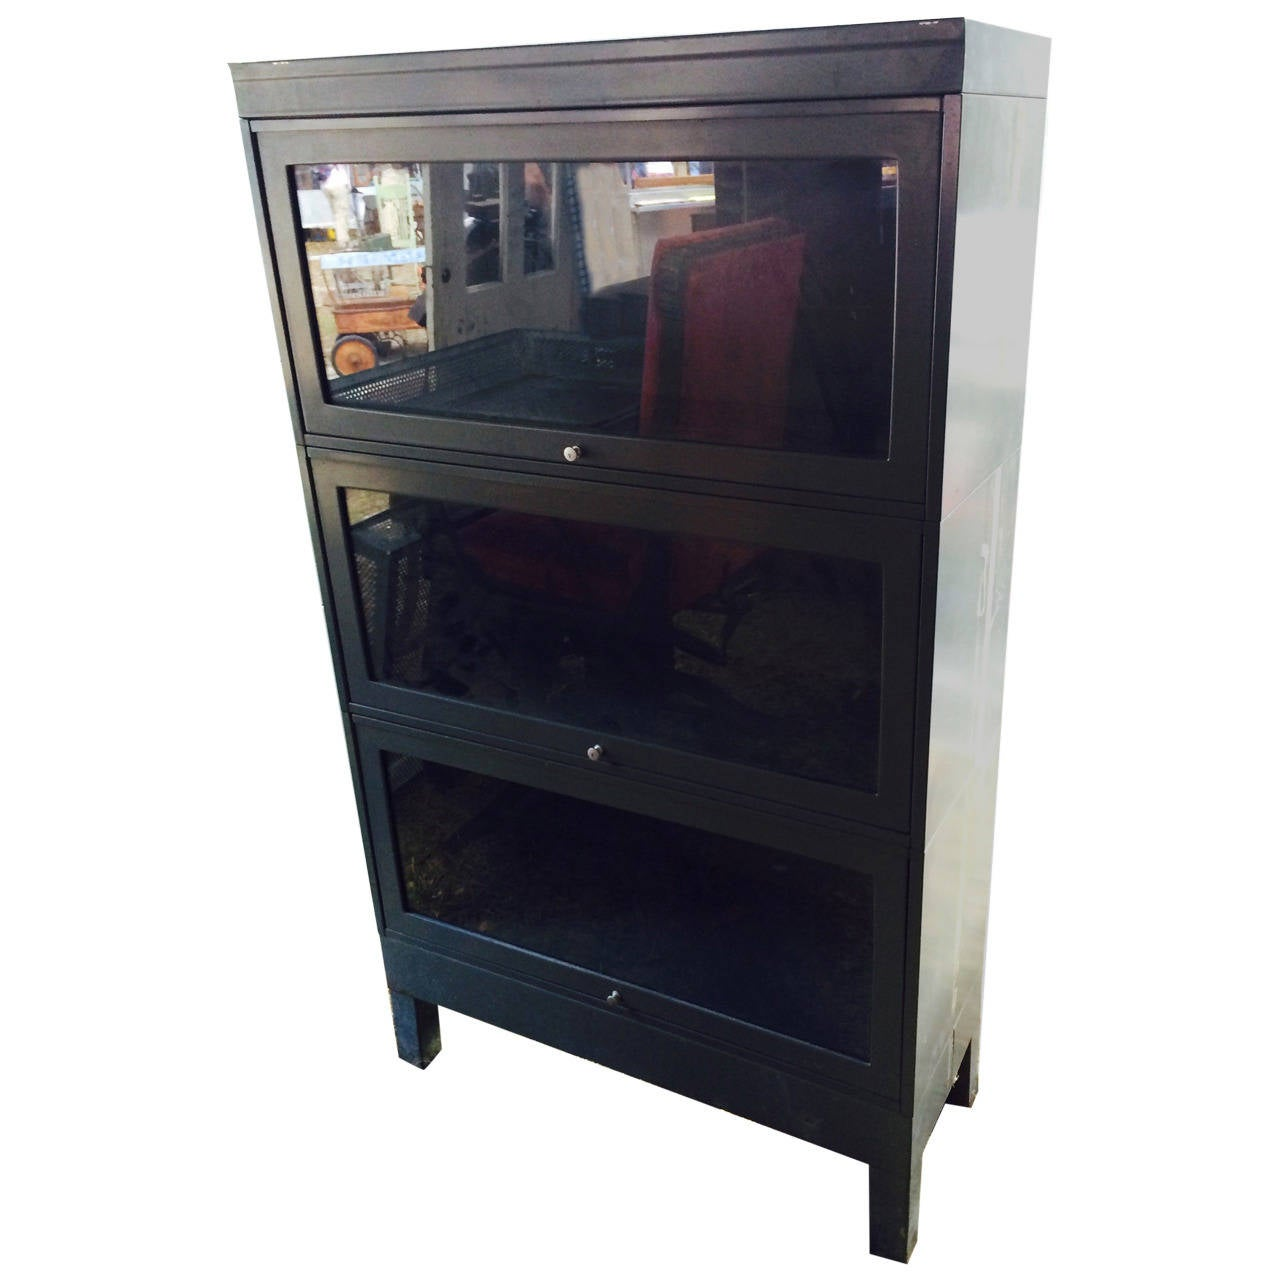 #7E634D  Section Steel Storage File Cabinet / Bookcase With Glass Front Image 2 with 1280x1280 px of Recommended Bookcase With File Cabinet 12801280 save image @ avoidforclosure.info